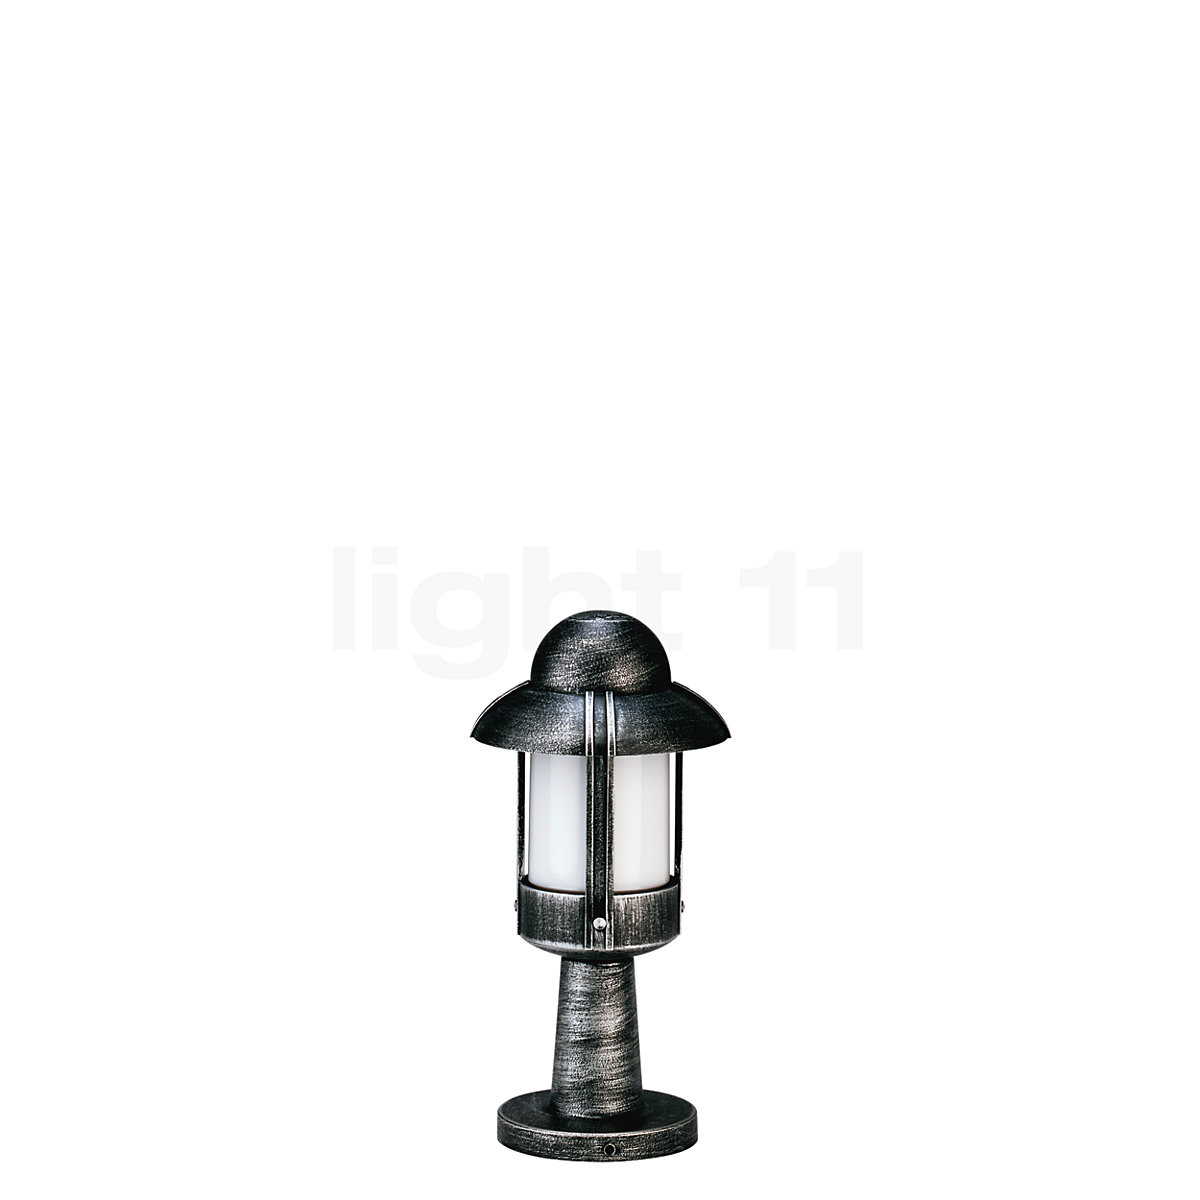 Leuchten Bilder Buy Albert Leuchten 0530 Pillar Light At Light11.eu